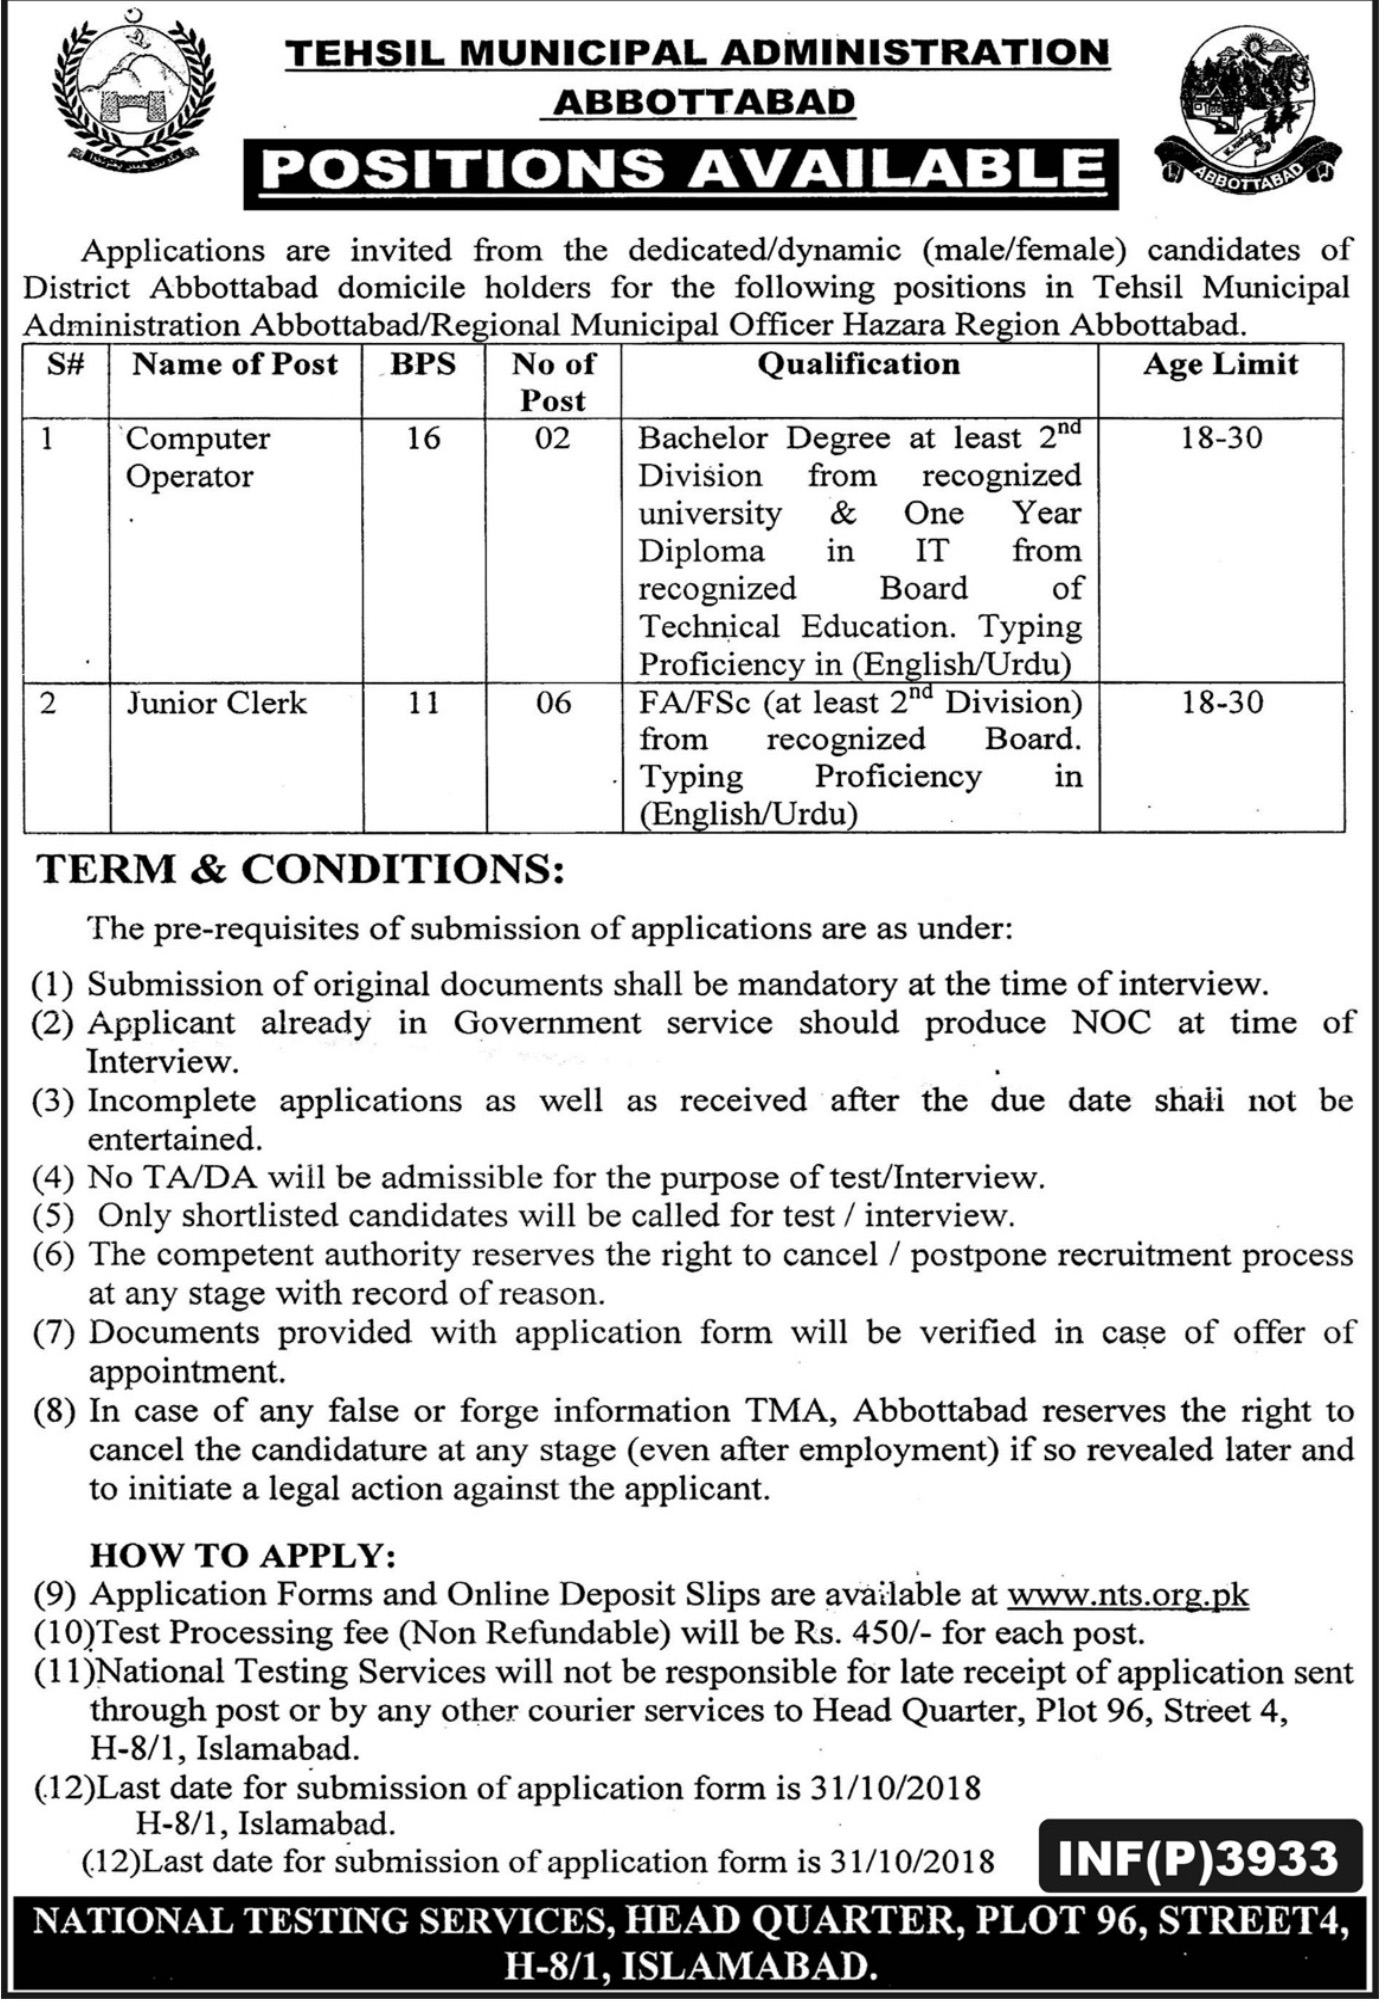 Tehsil Municipal Administration NTS Jobs 2019 Application Form Download